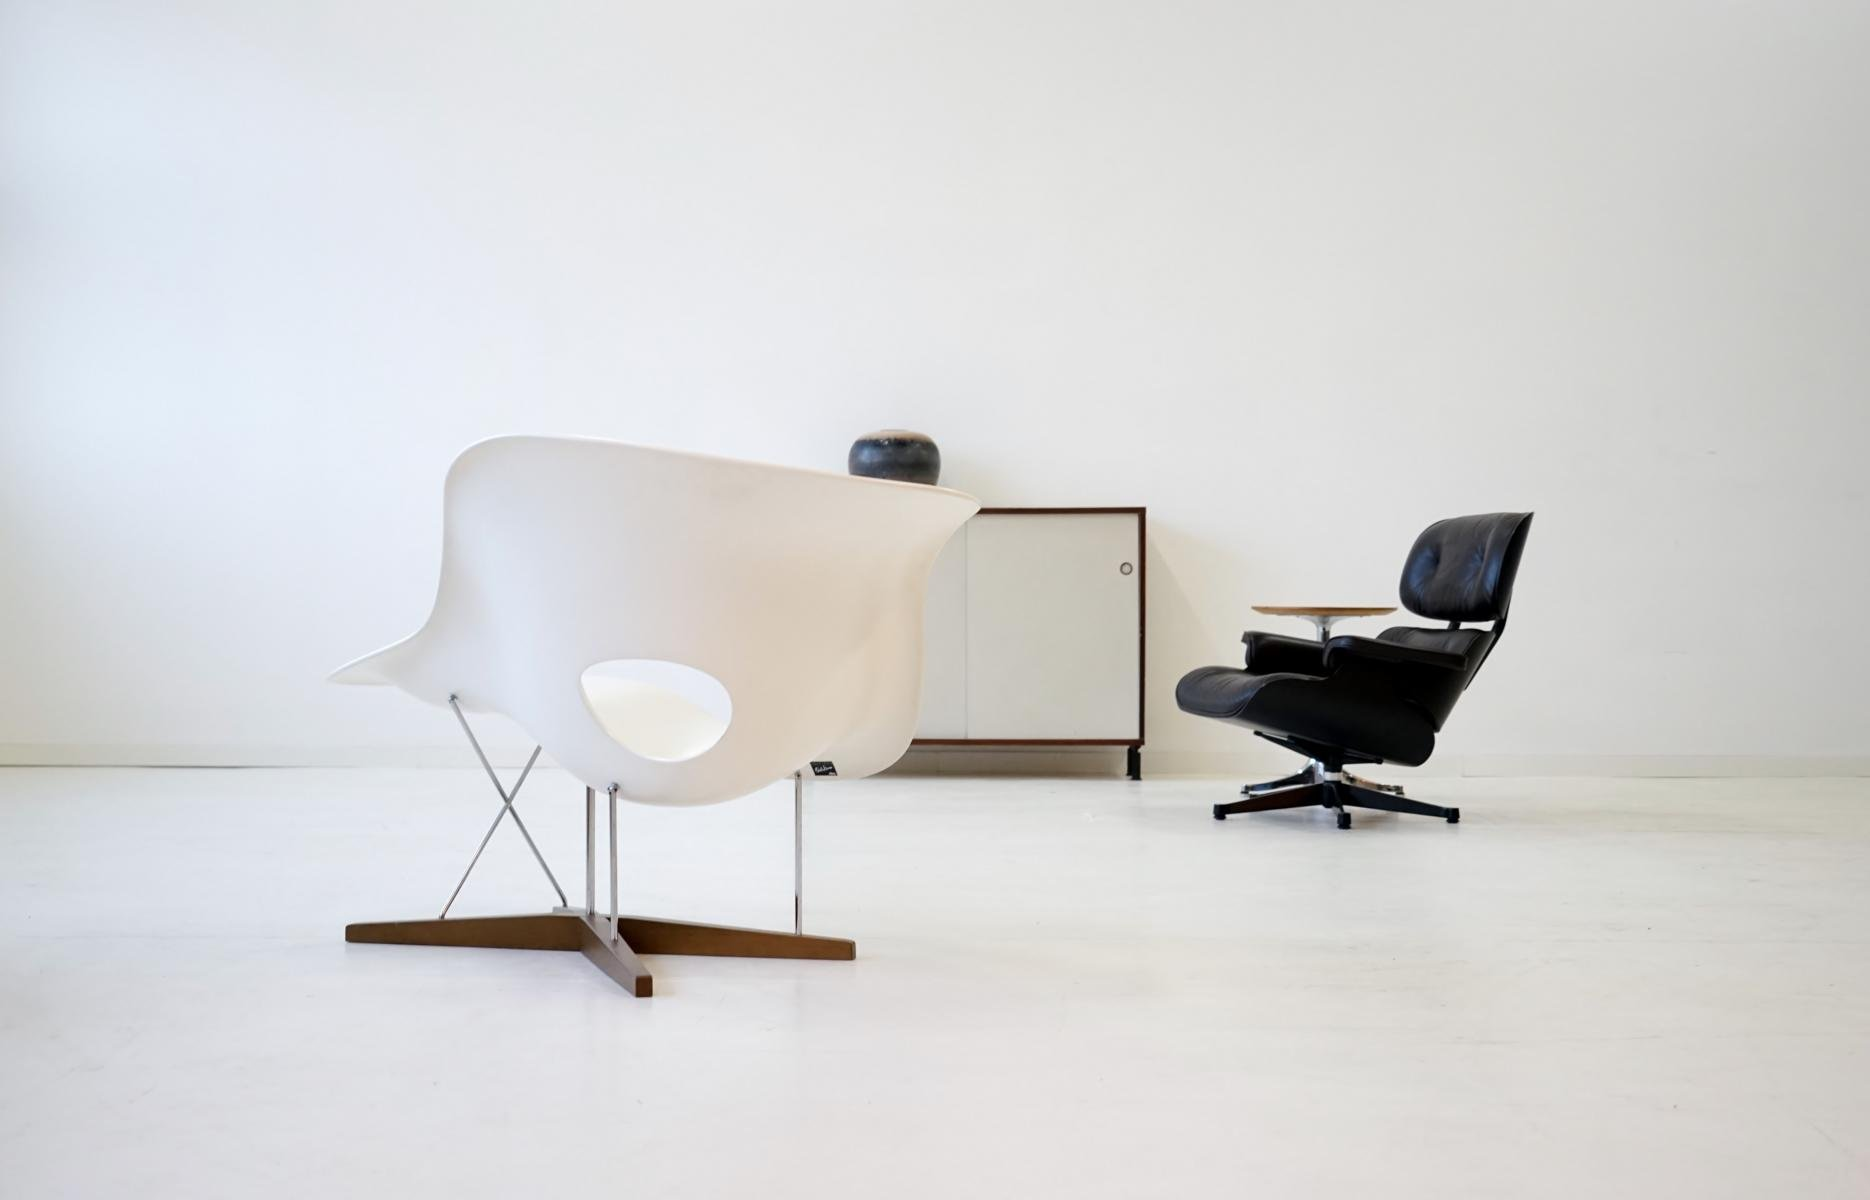 Chaises Design Pas Cheres Chaise Design Eames Pas Cher Interesting Distingu Chaises